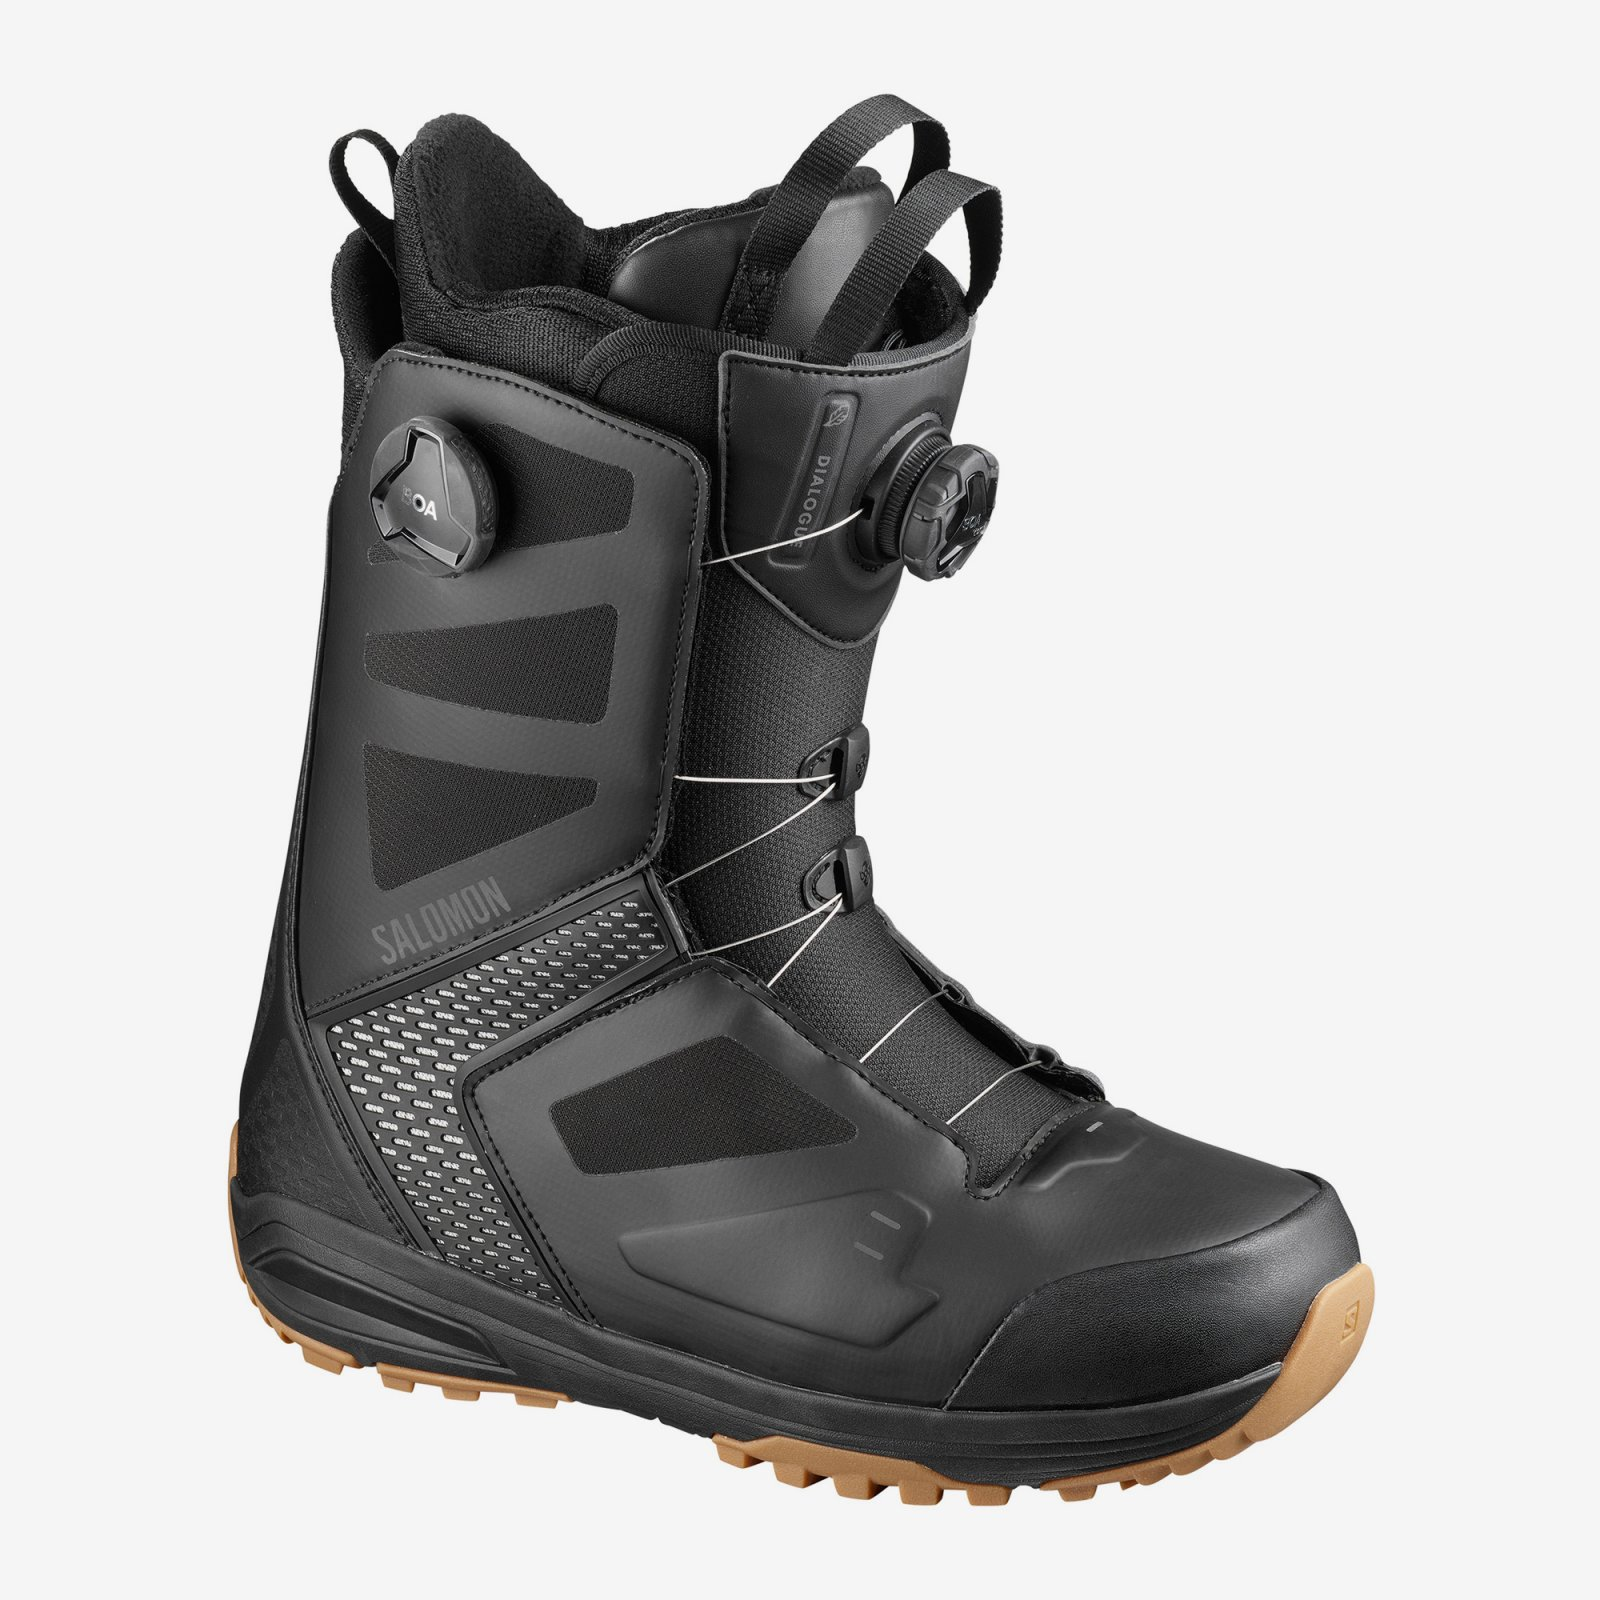 Salomon Dialogue Focus BOA Men's Snowboard Boots 2020